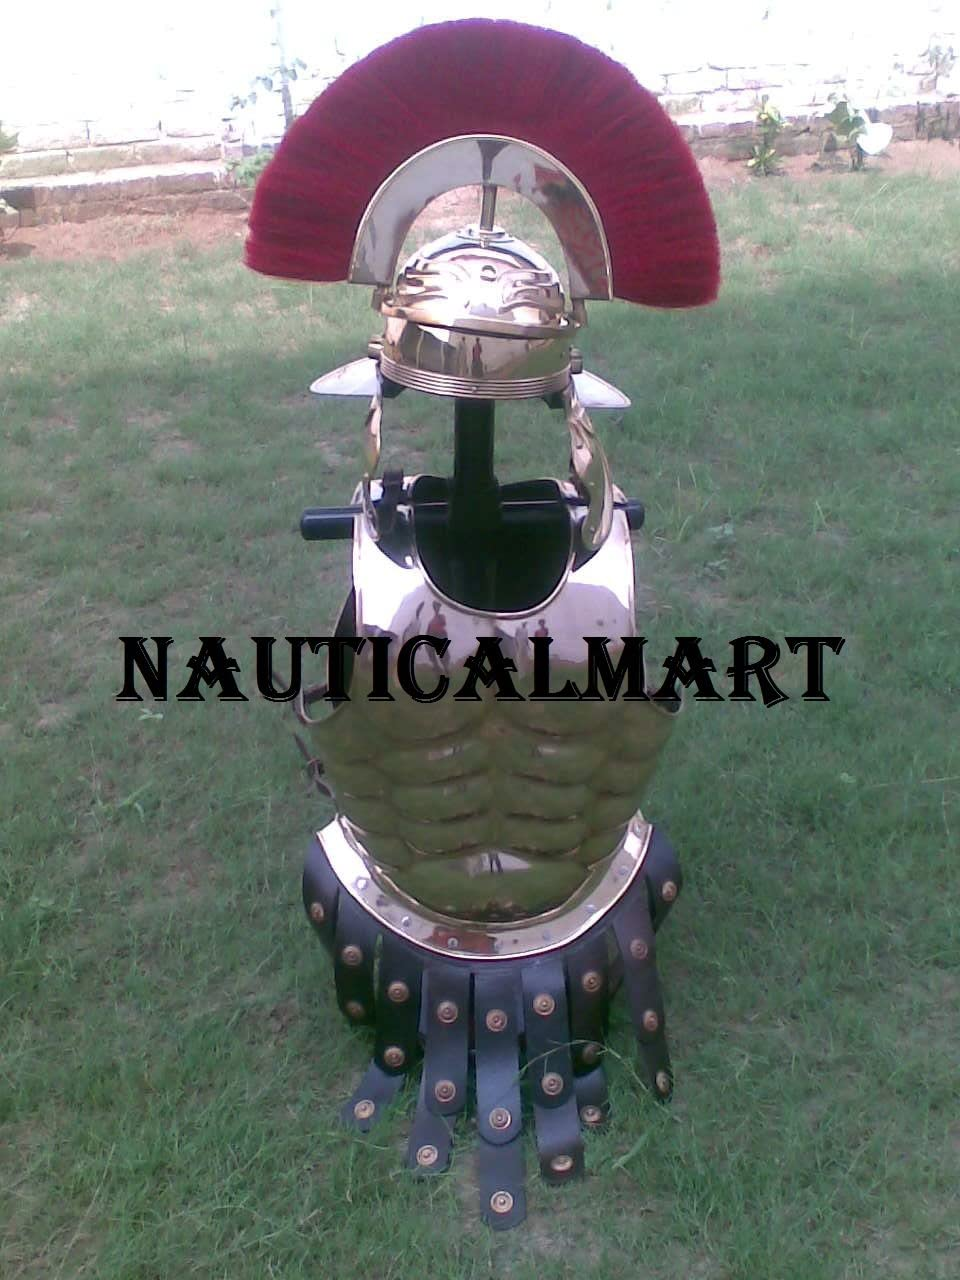 NAUTICALMART Medieval Armor Halloween Ranking TOP5 Costume Max 40% OFF Muscle Wearable Ar